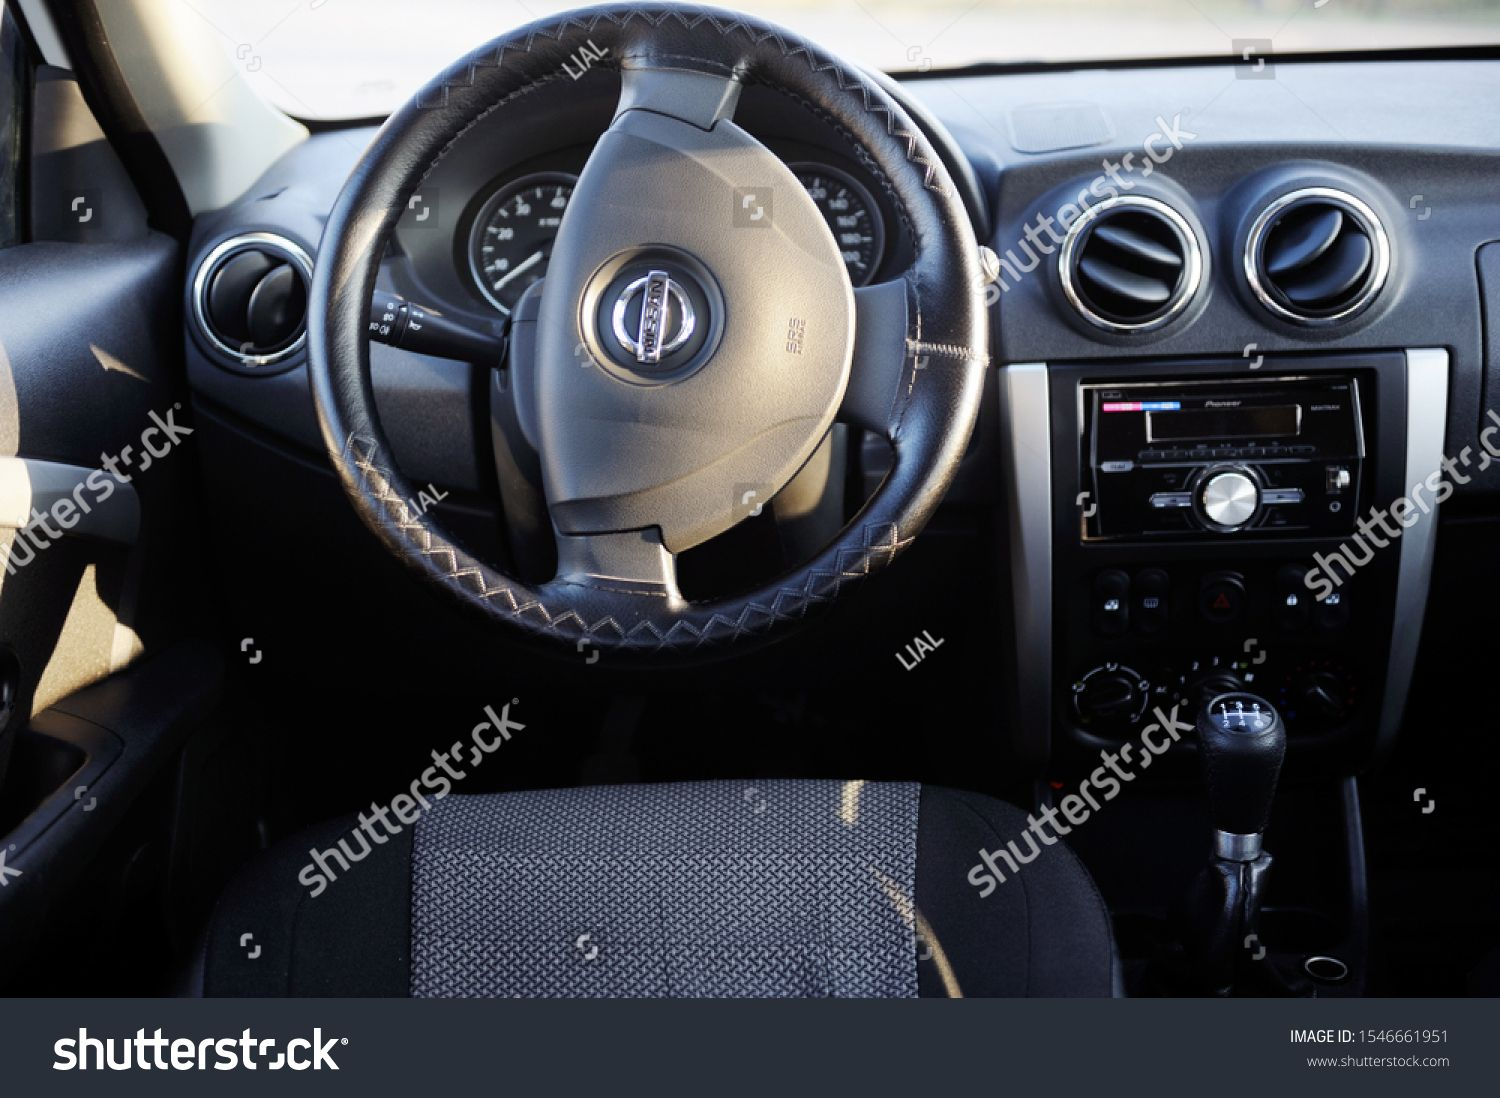 Belarus Minsk October 31 2019 Private Eco Car Nissan Almera Car Interior And Dashboard N Ad Affiliate Private Bela In 2020 Nissan Almera Car Interior Nissan